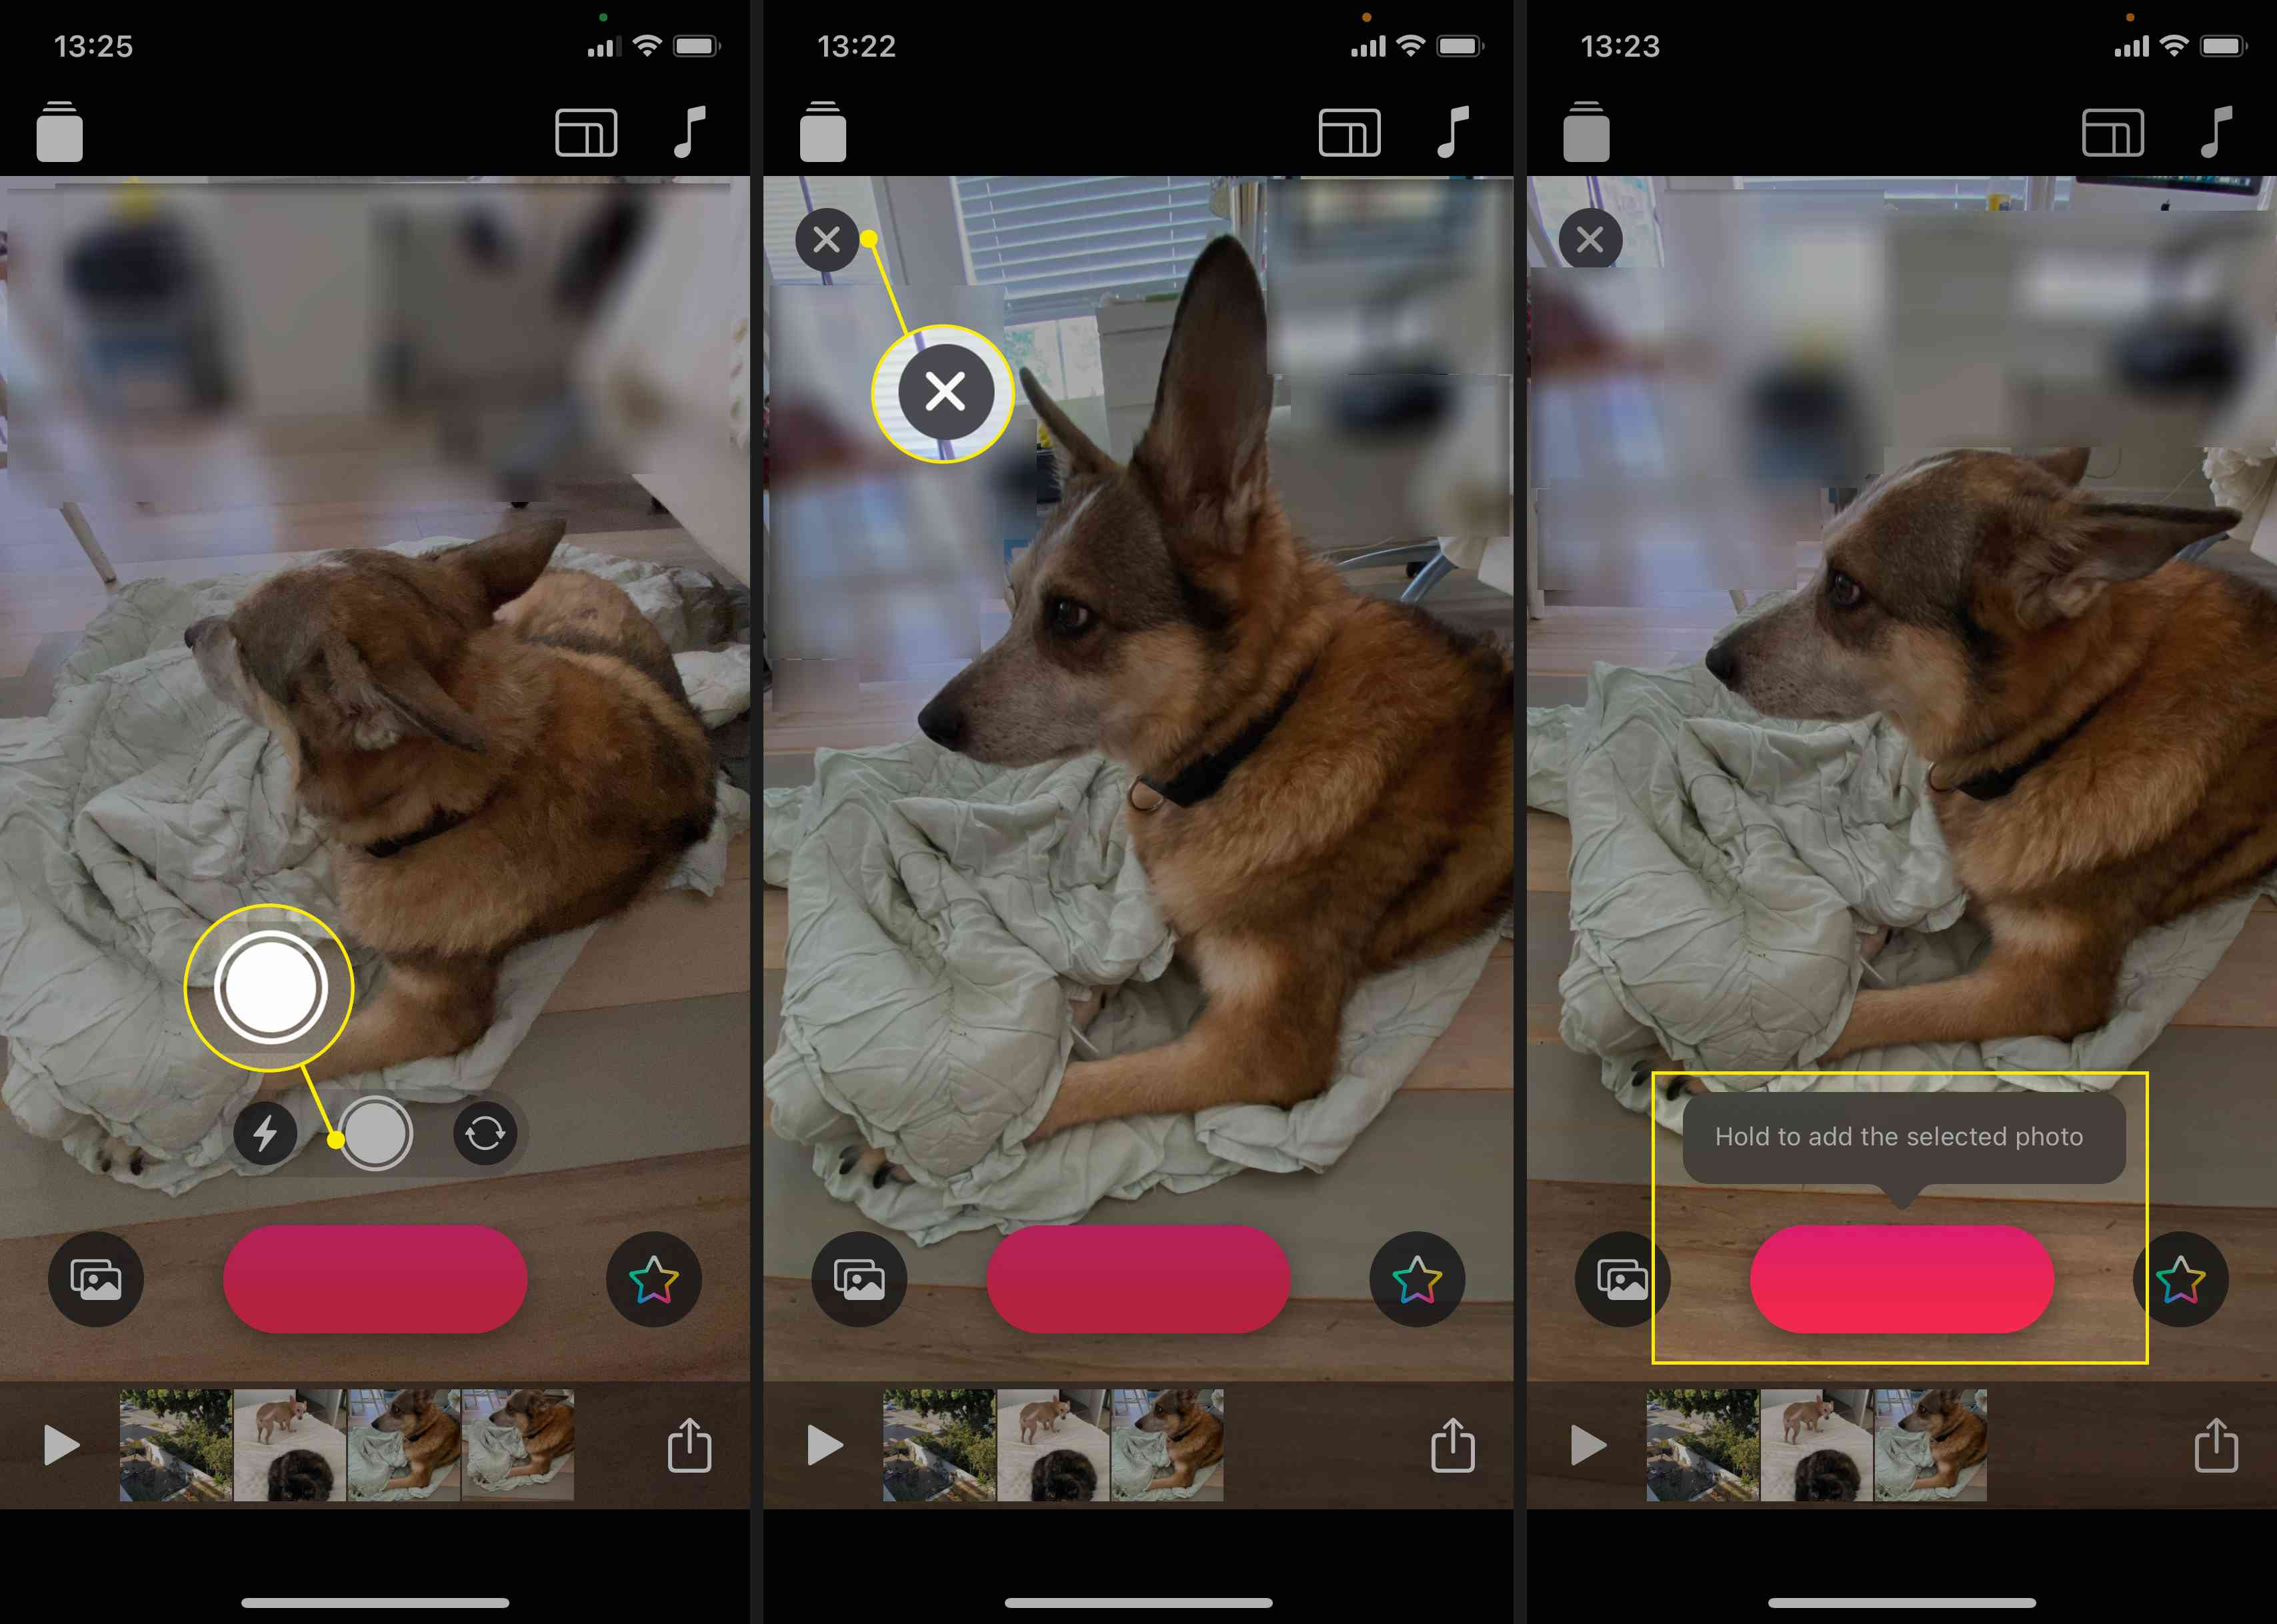 Take and add photos with the Clips app